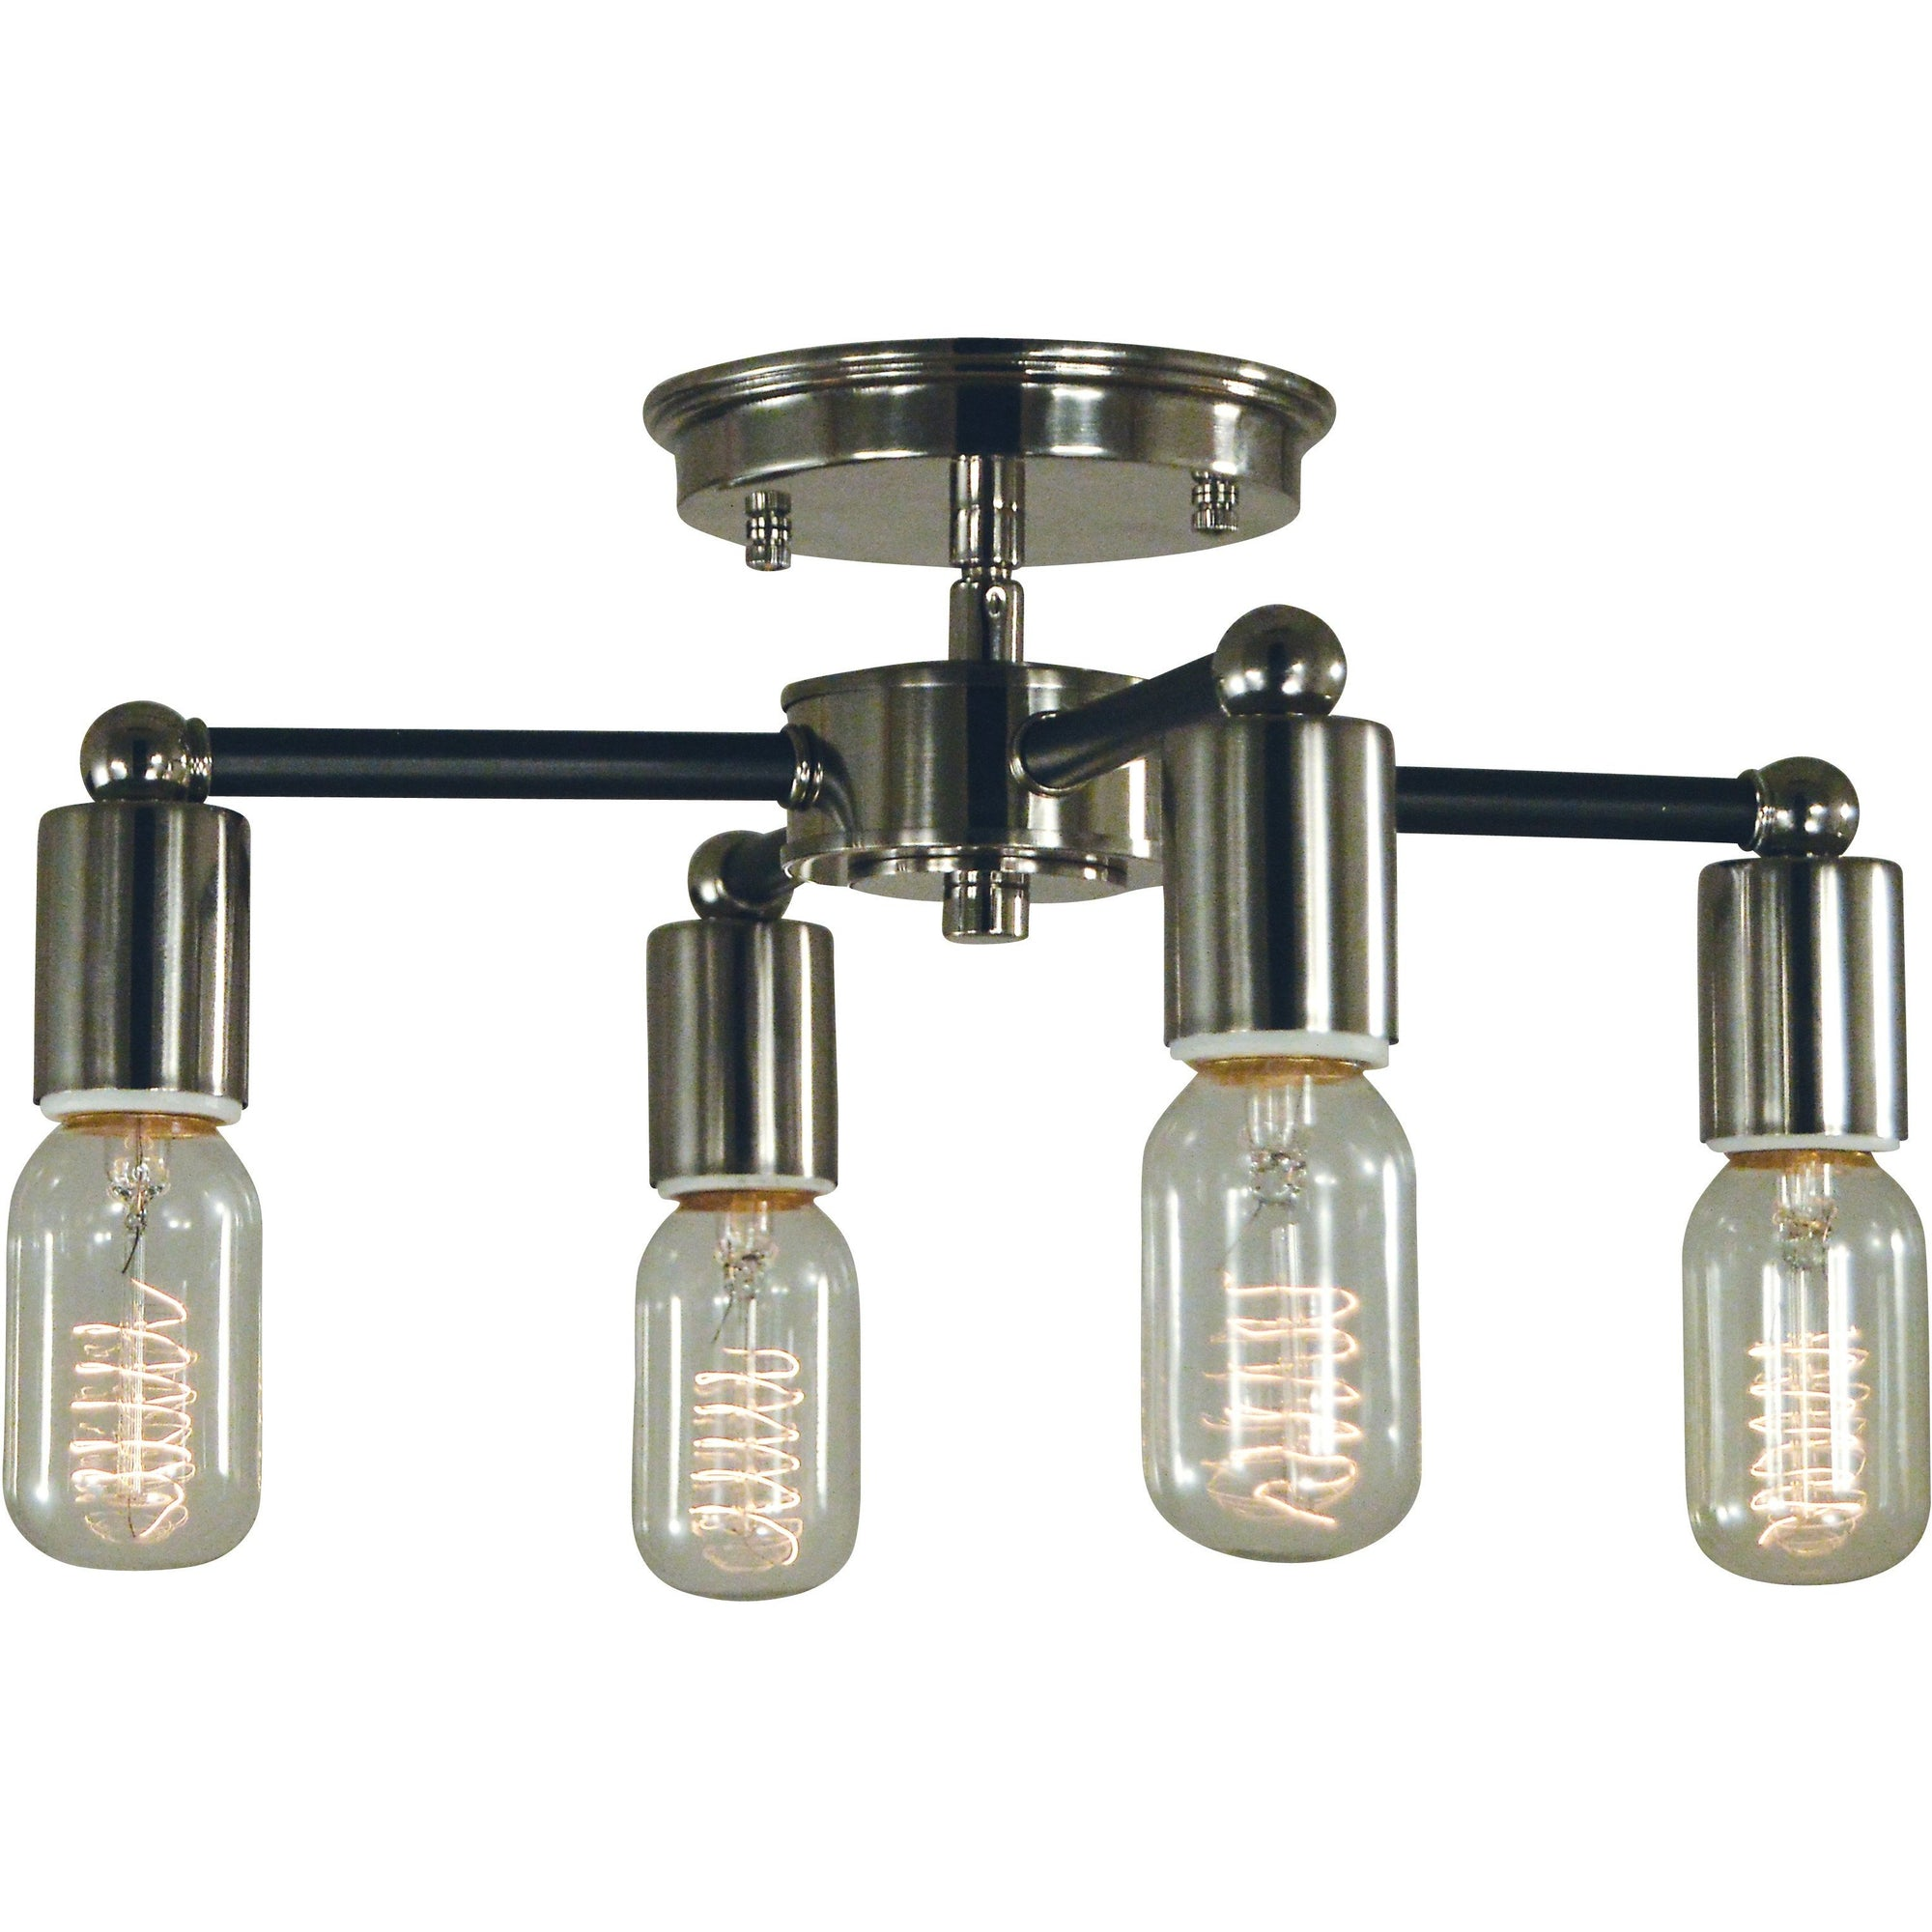 Framburg Flush & Semi Flush Mounts Polished Nickel with Matte Black Accents 4-Light Nebula Flush Mount/Semi Flush Mount by Framburg 5080